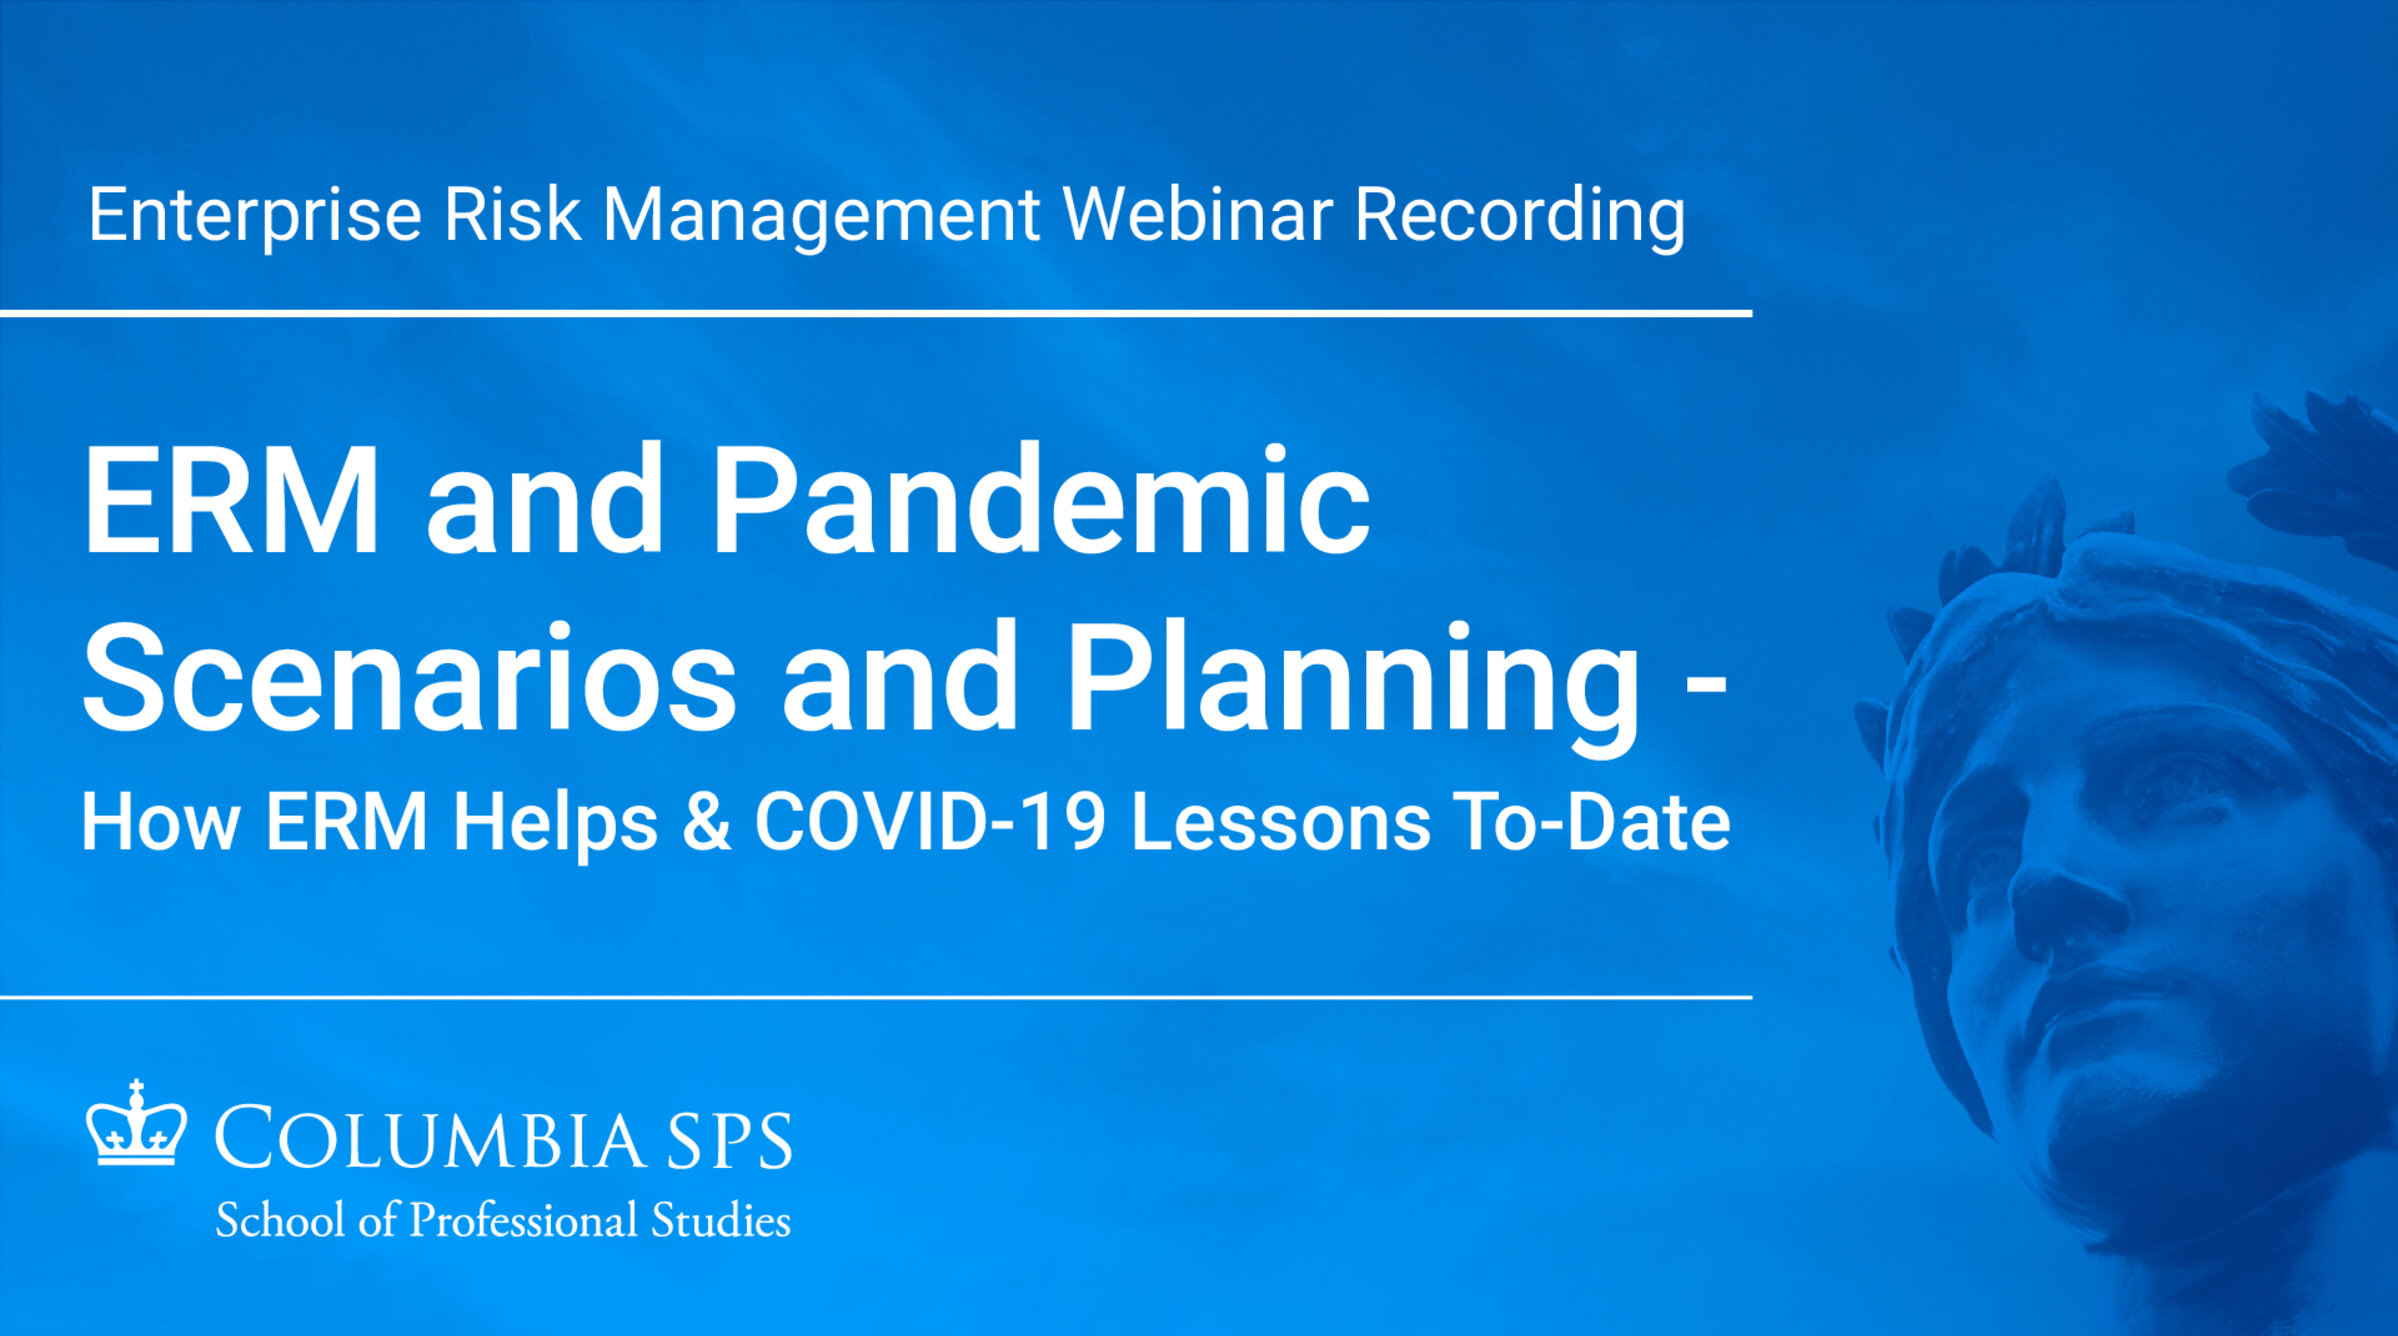 ERM and Pandemic Scenarios and Planning - How ERM Helps and COVID-19 Lessons To-Date Webinar